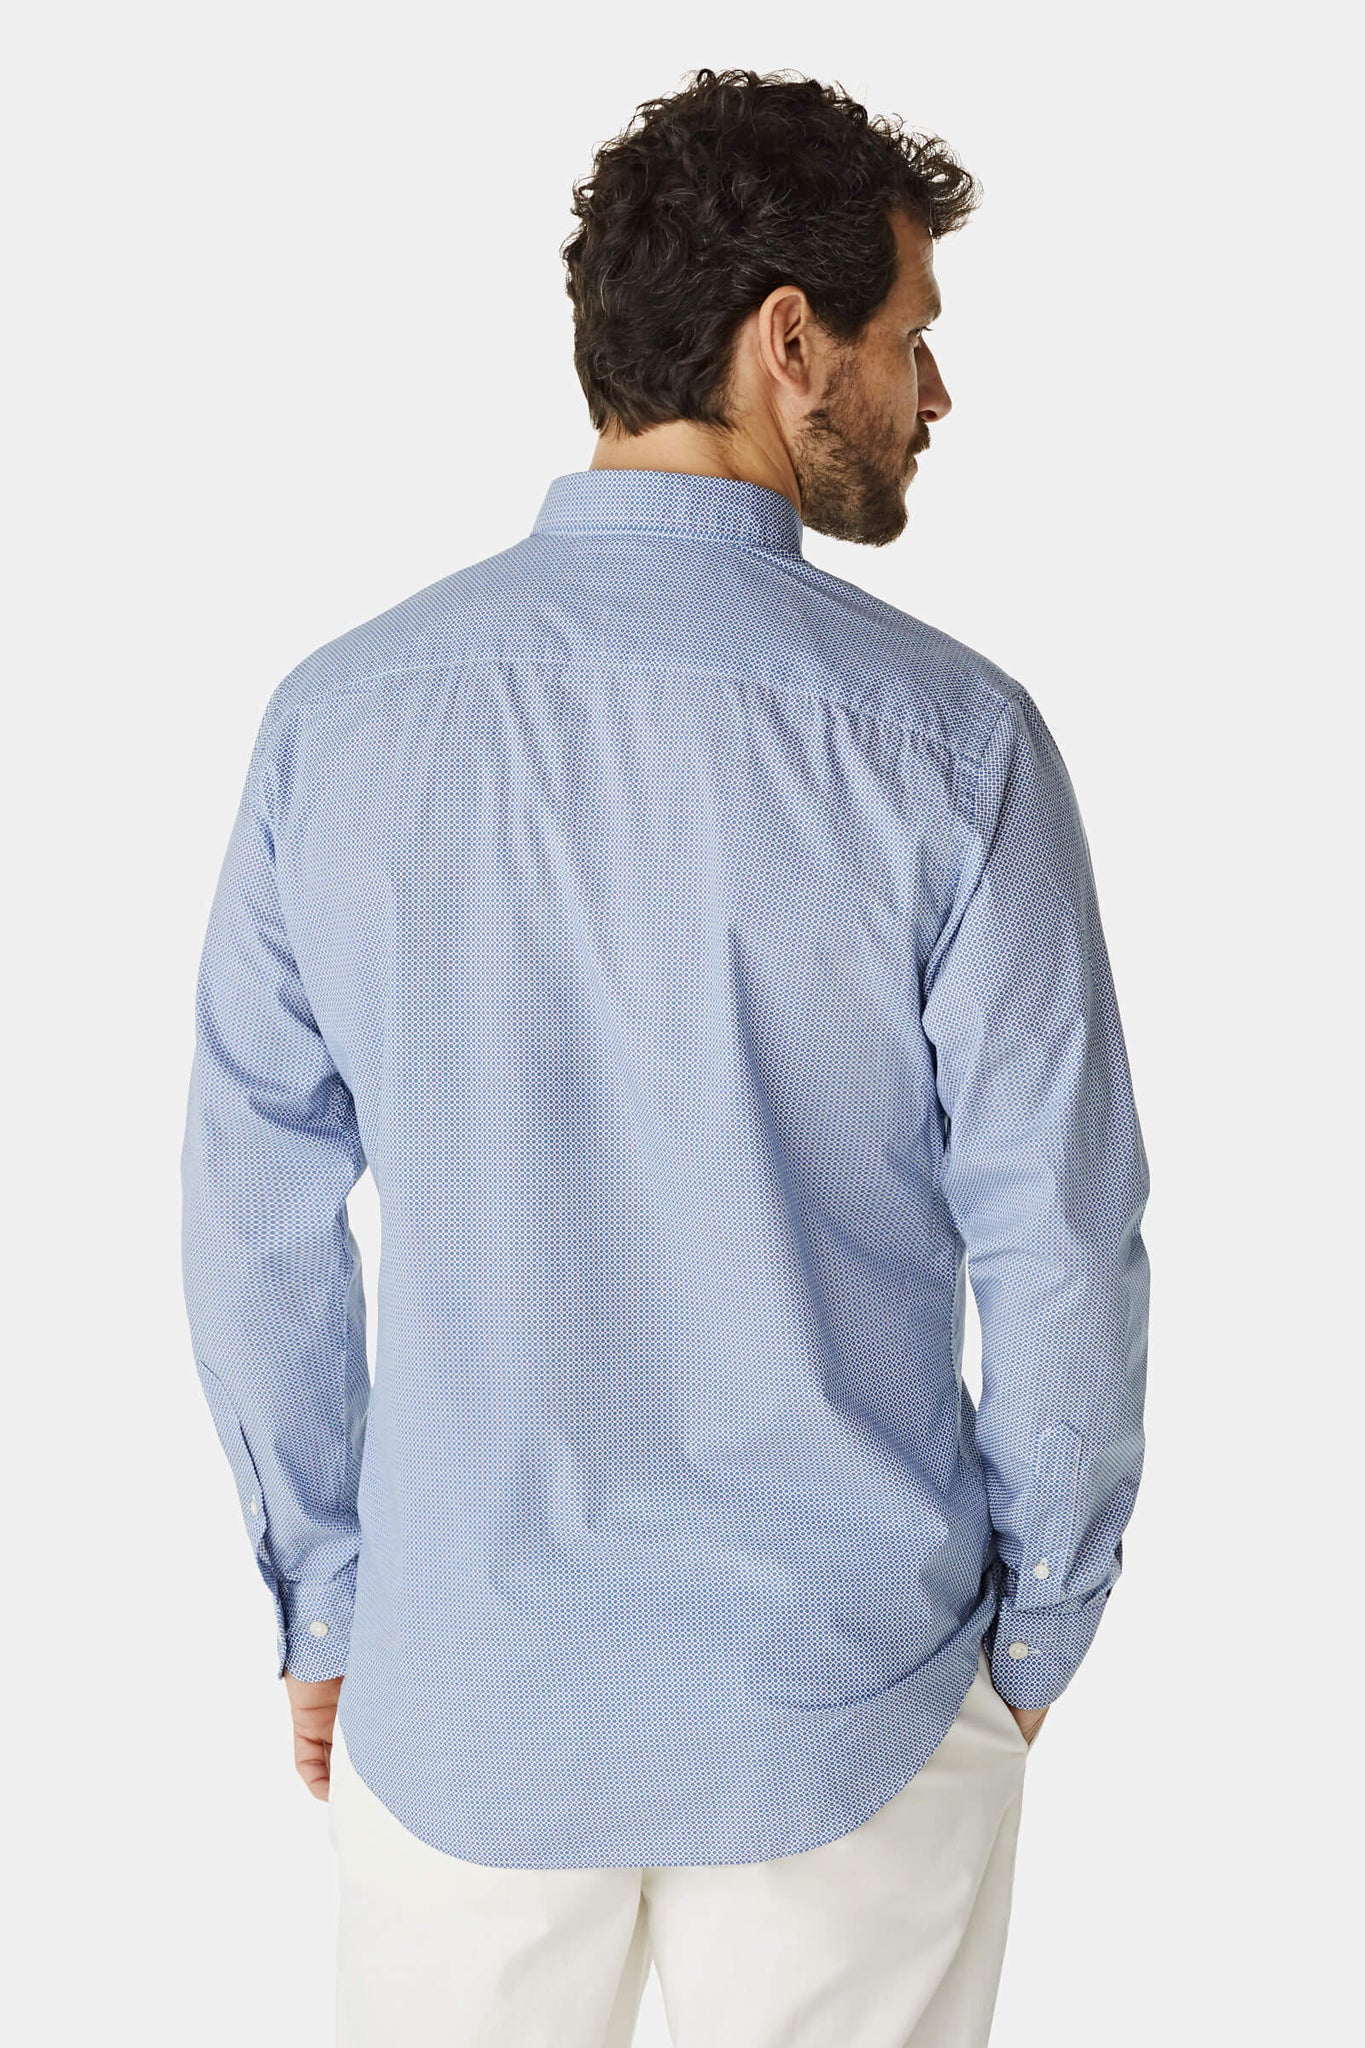 Regular fit shirt with blue dots pattern